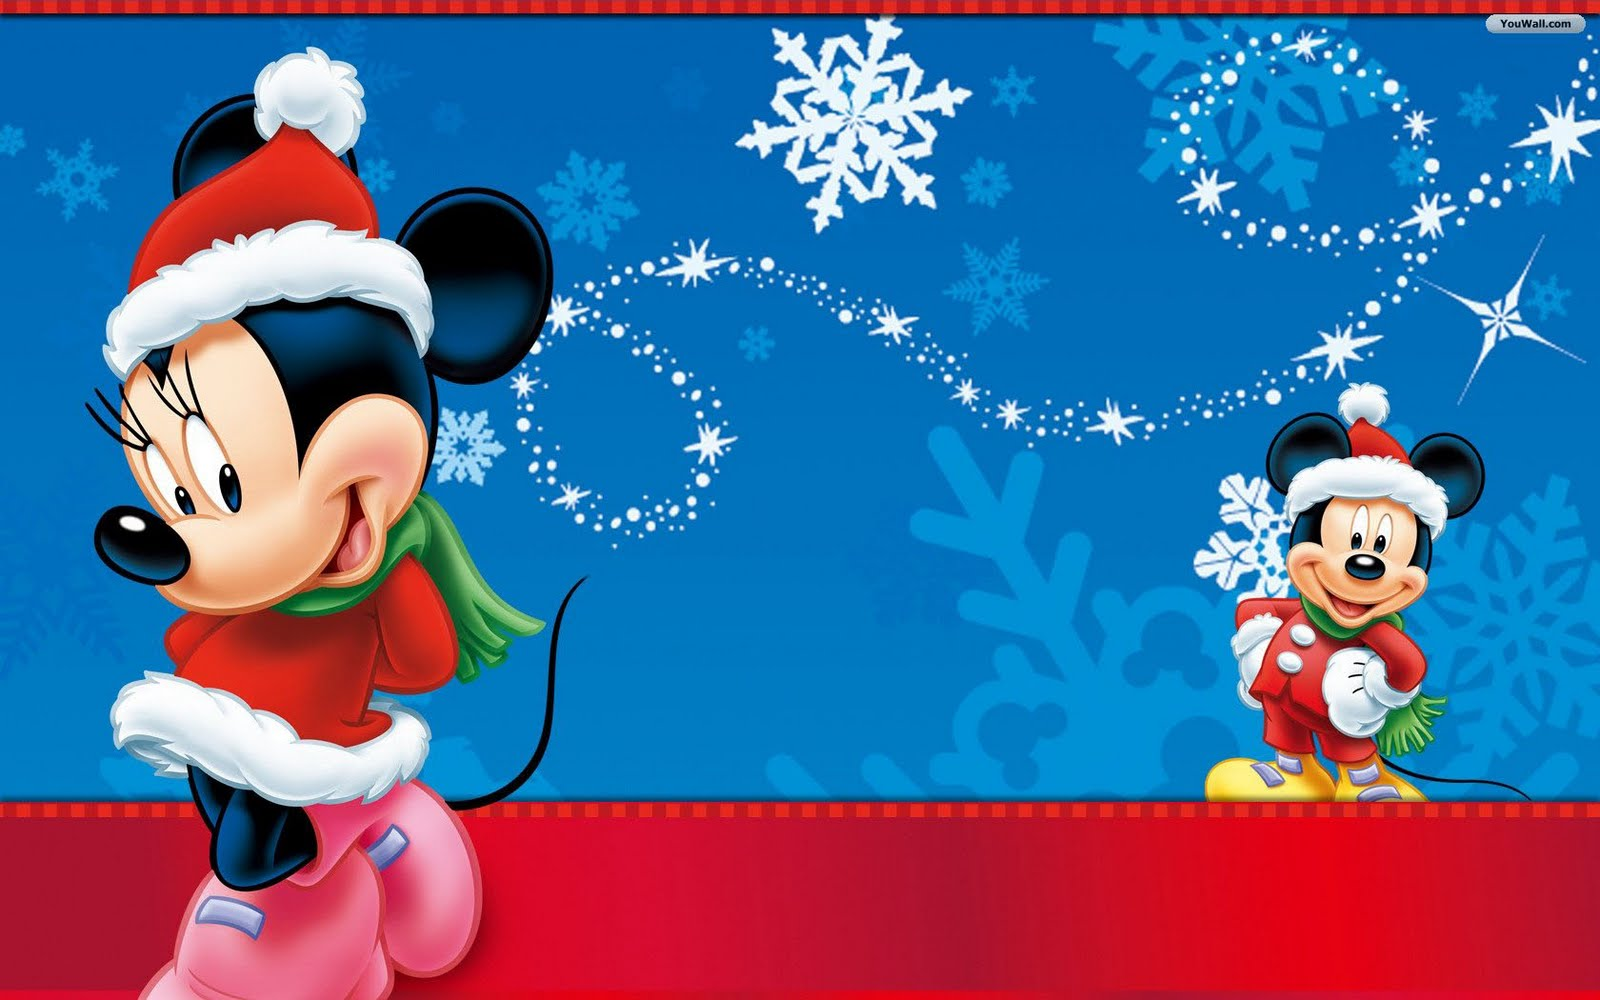 Christmas 5 adorable Disney Christmas wallpapers for your computer 1600x1000